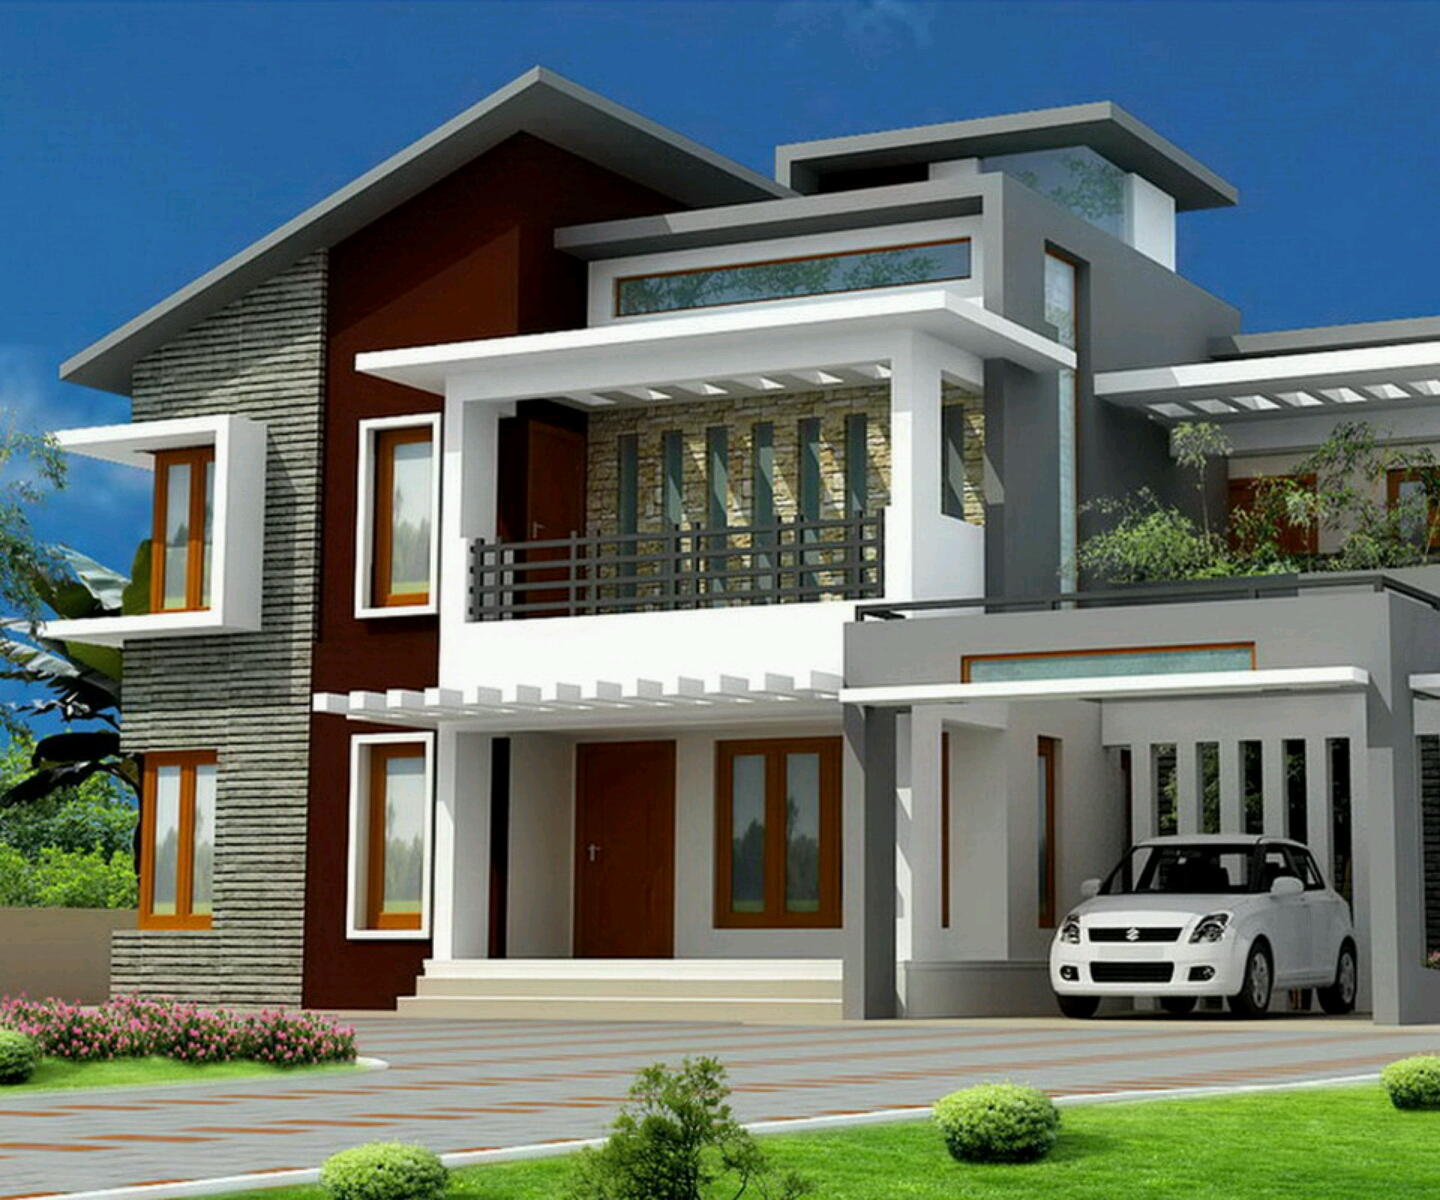 New home designs latest.: Modern bungalows exterior designs views.